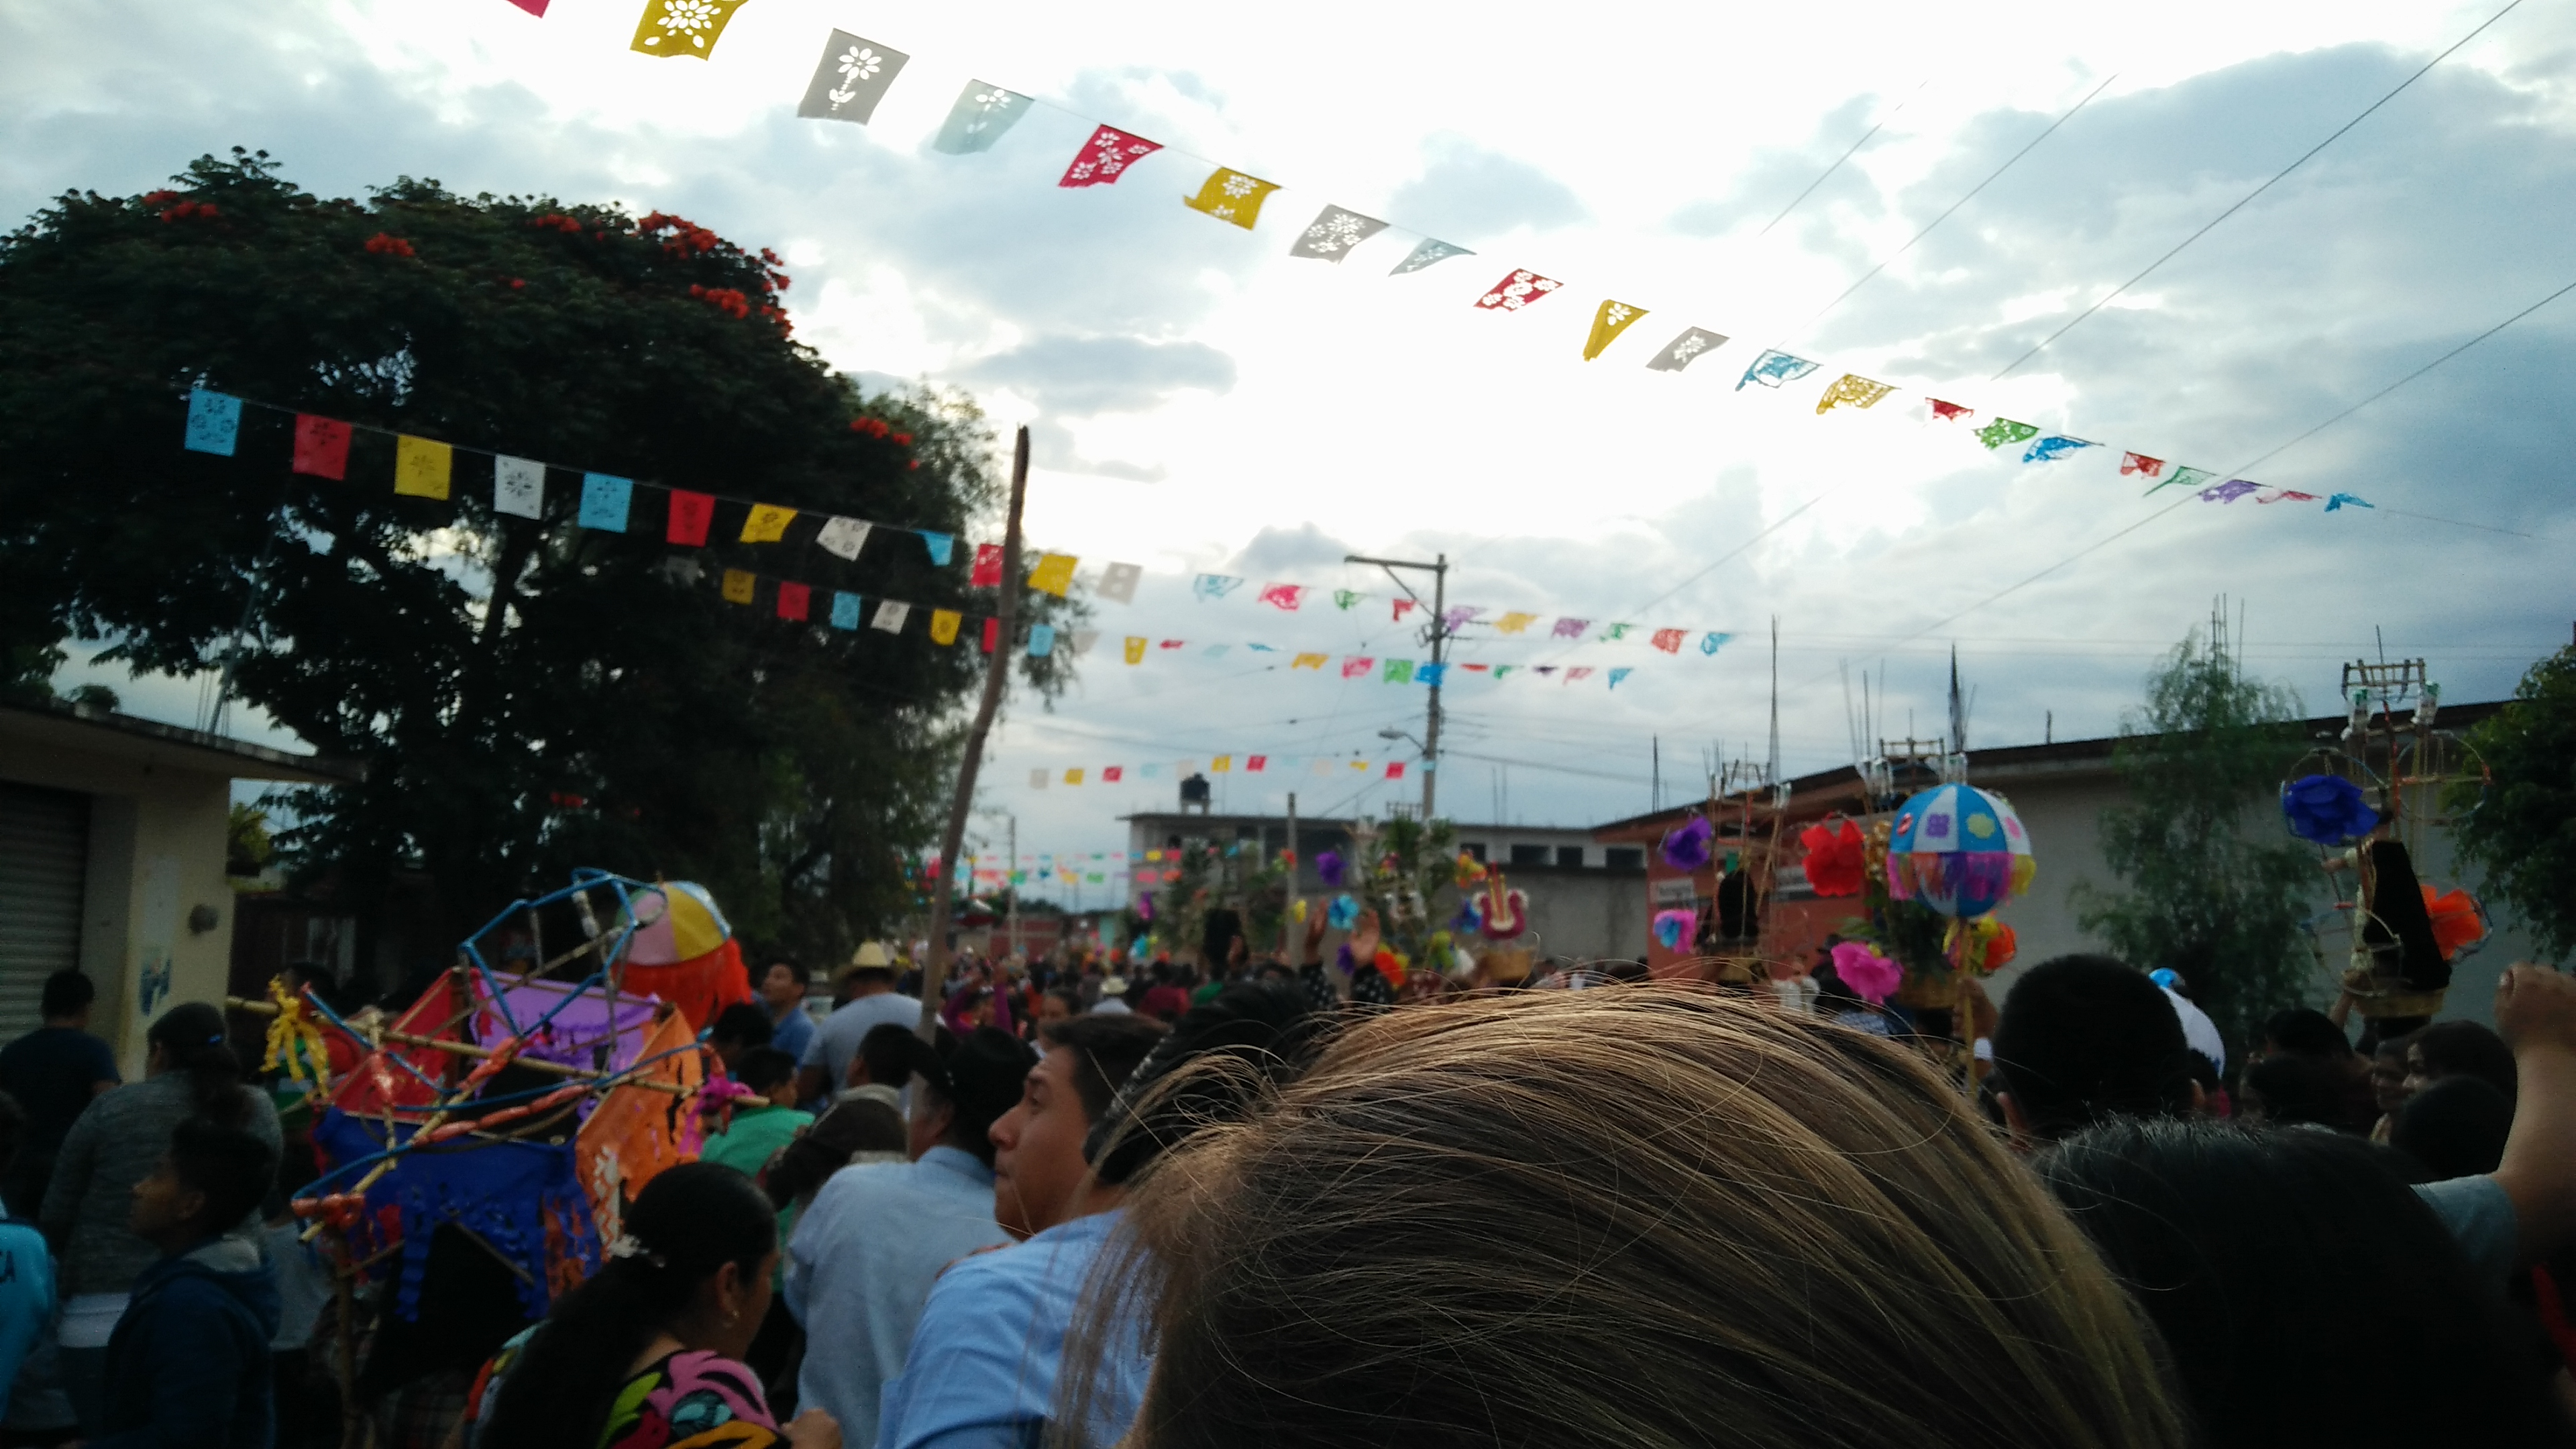 A large crowd of people walk through the streets of Tomaltepec. Papel picado cross the buildings of the city.